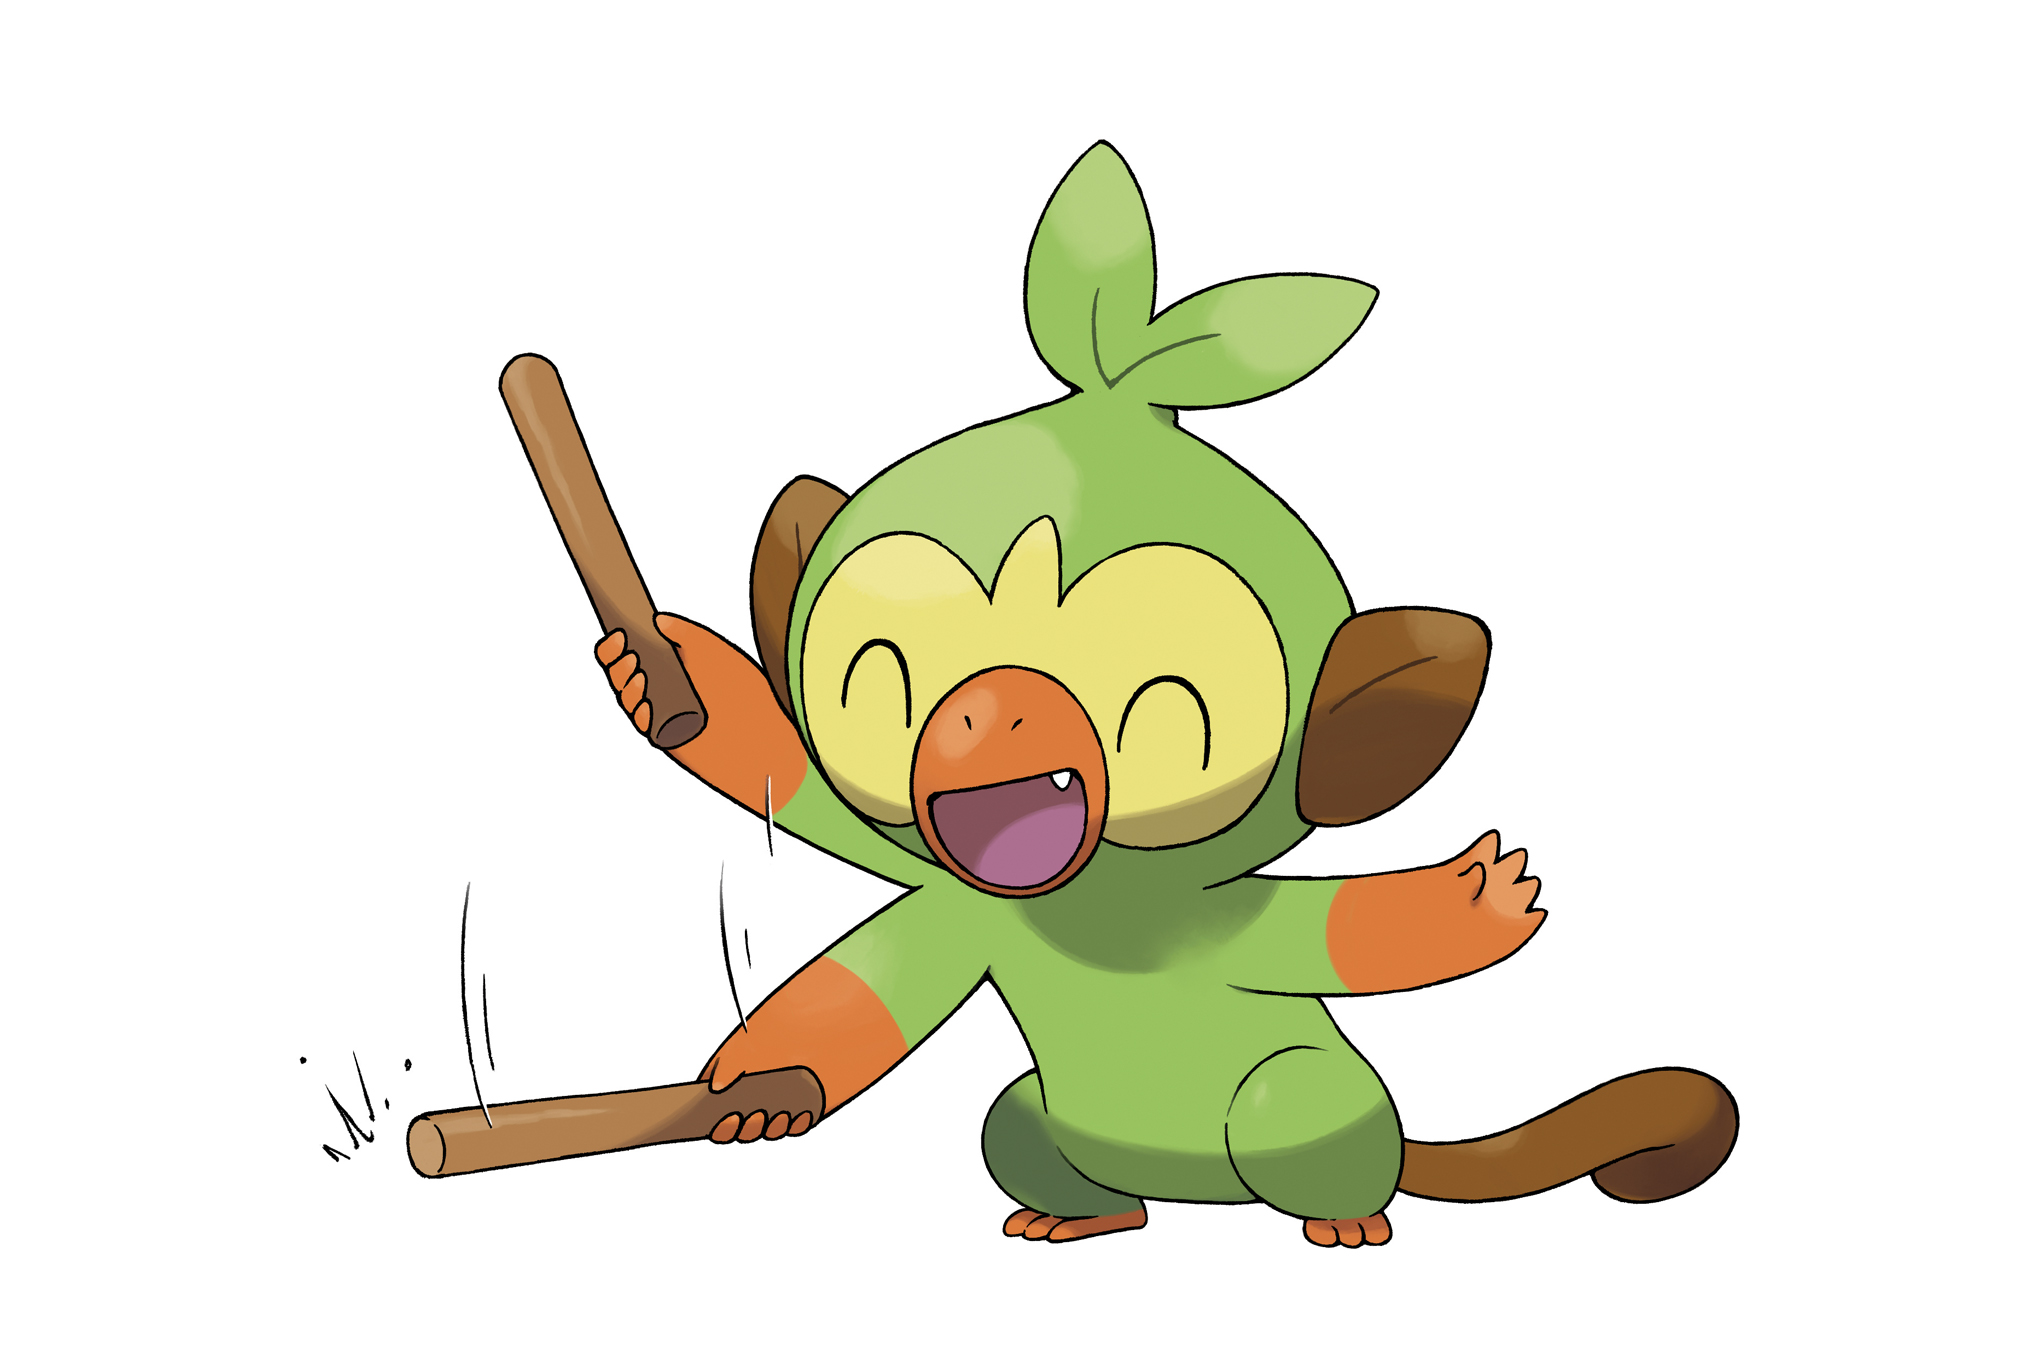 Pokémon Sword and Shield Grookey guide: Evolutions and best moves